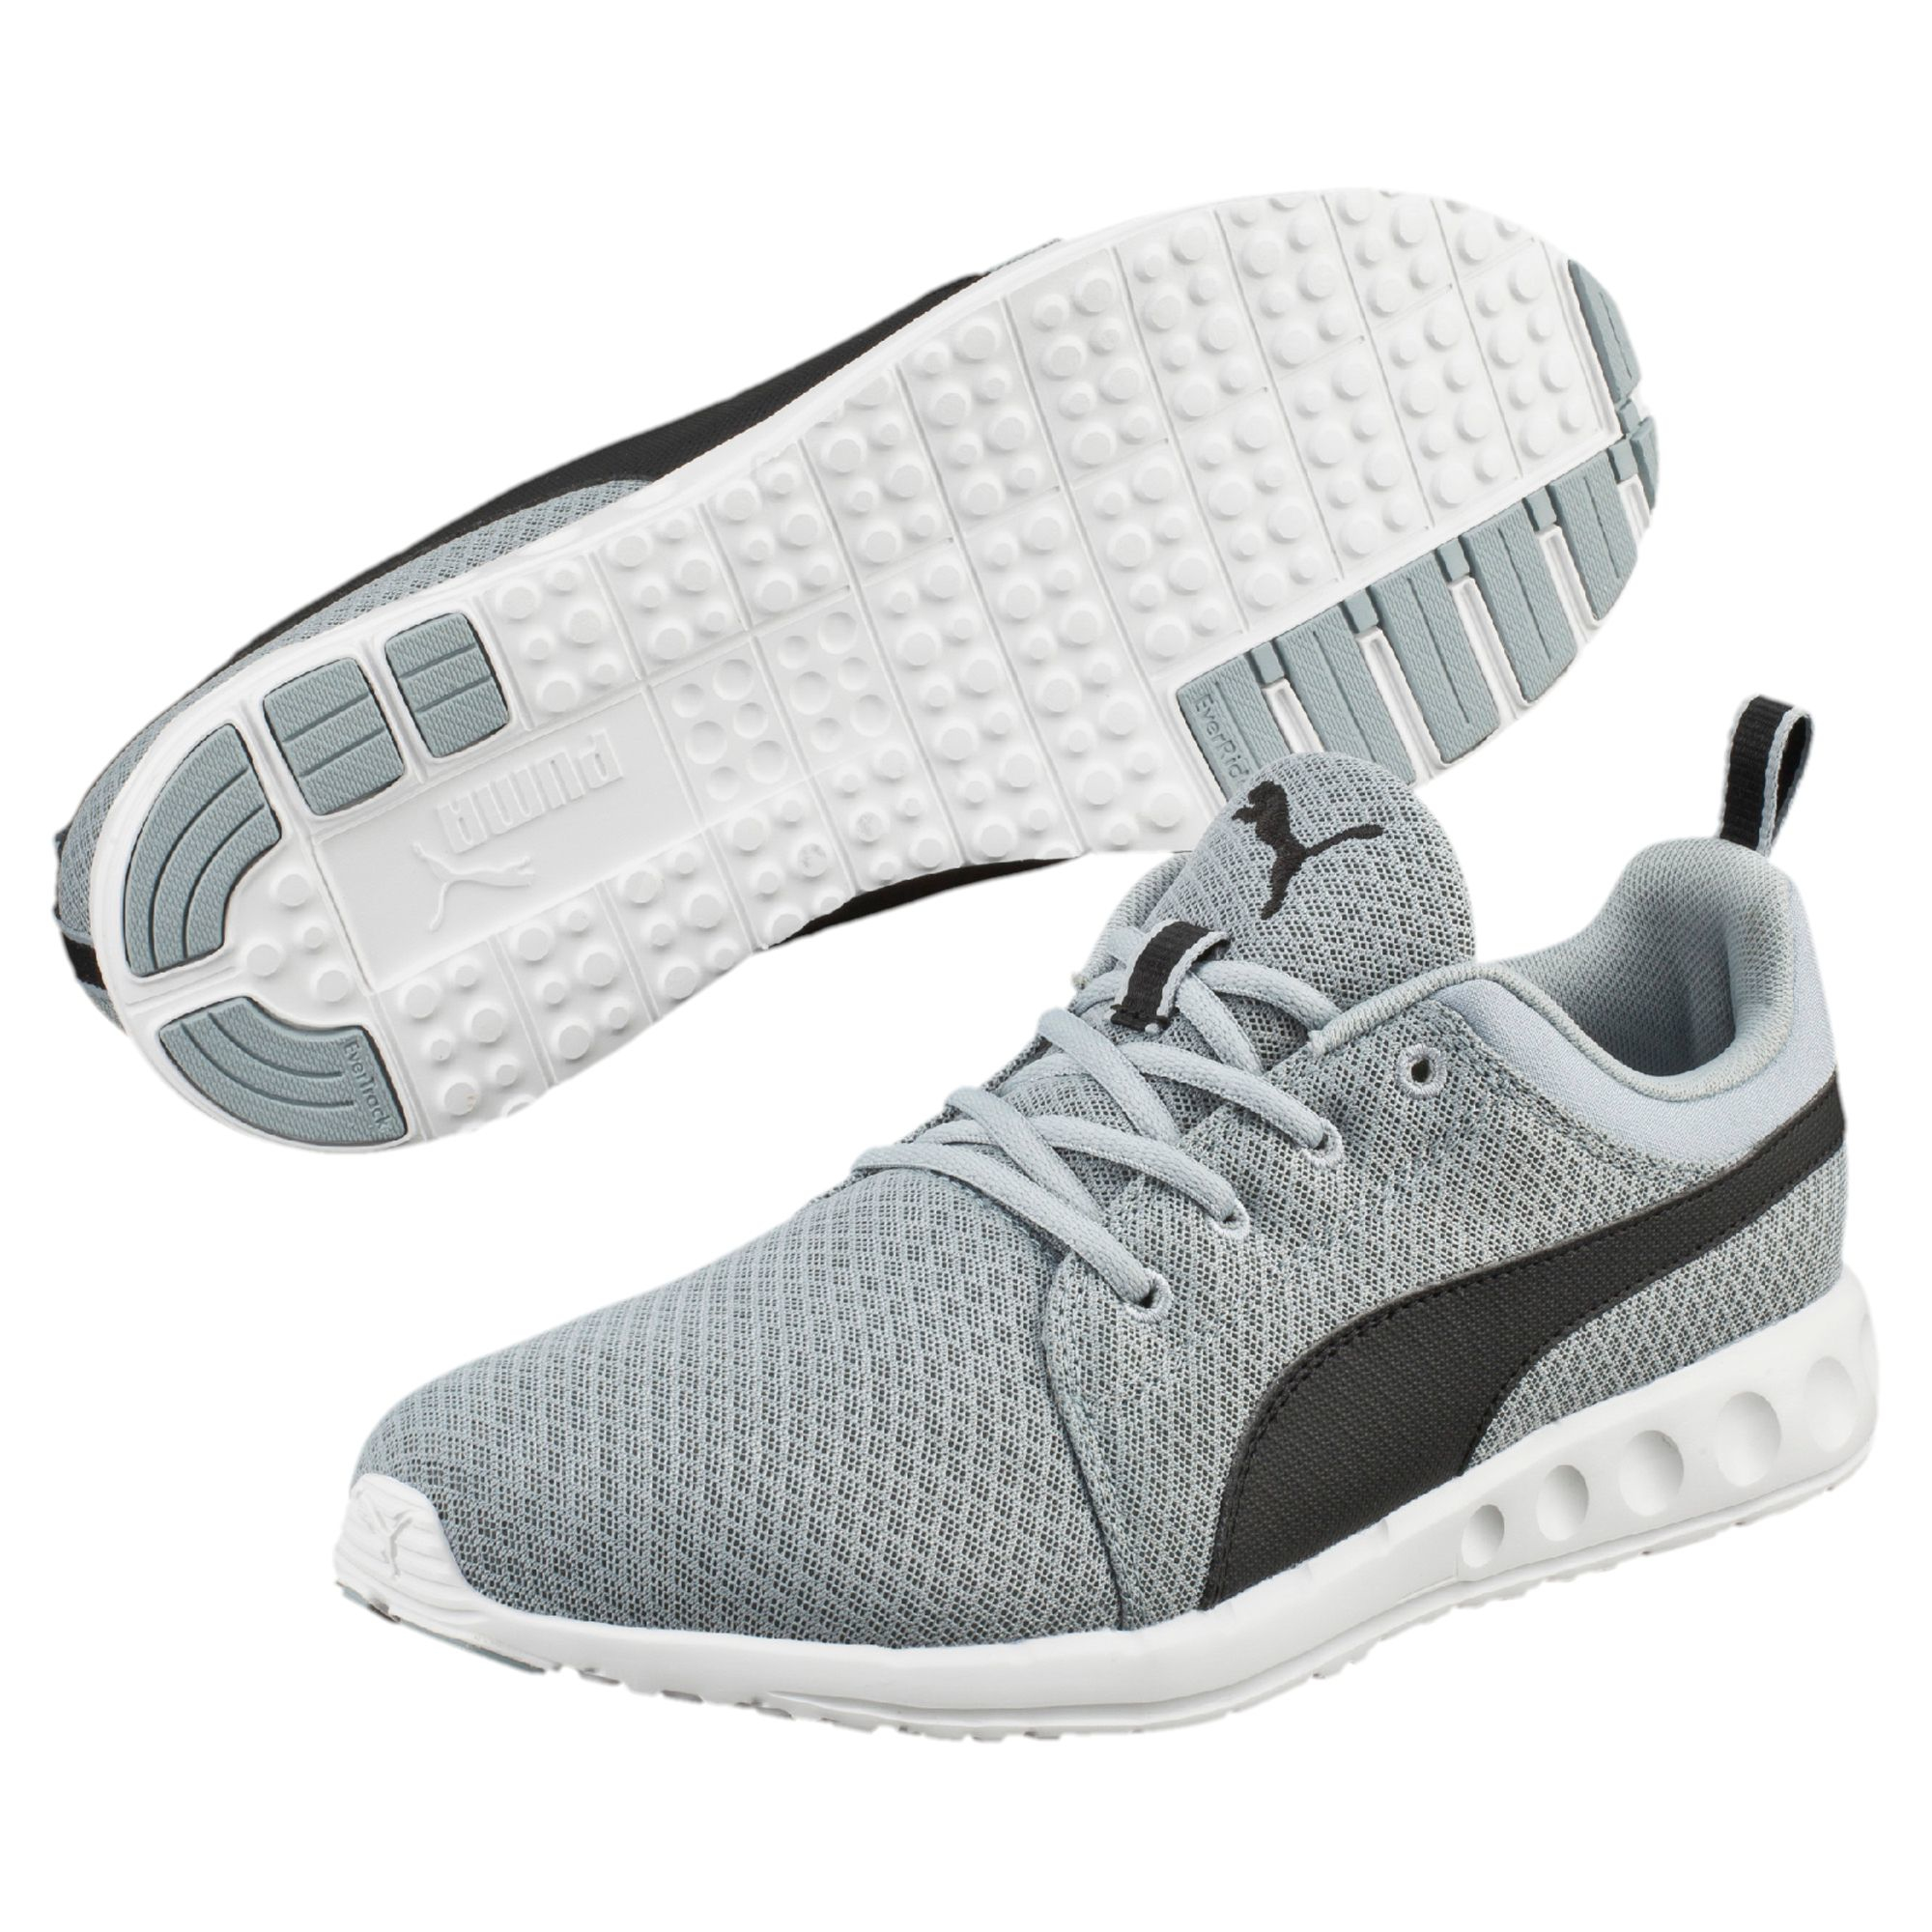 Lyst Puma For Mesh Shoes Runner Running Men Carson Men's xa7wHFq